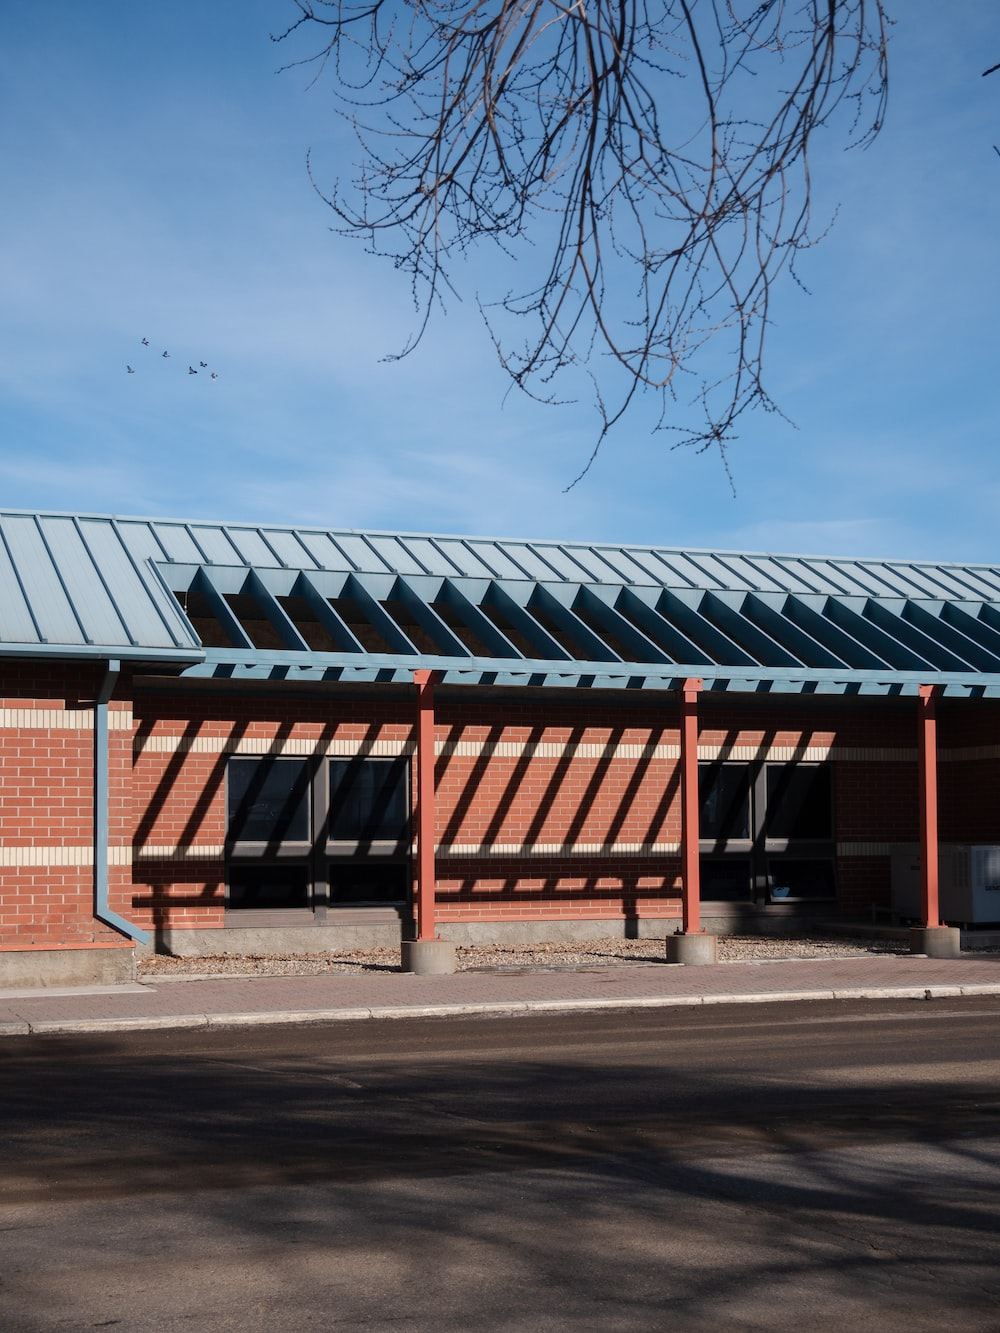 red and gray metal frame building near bare trees under blue sky during daytime